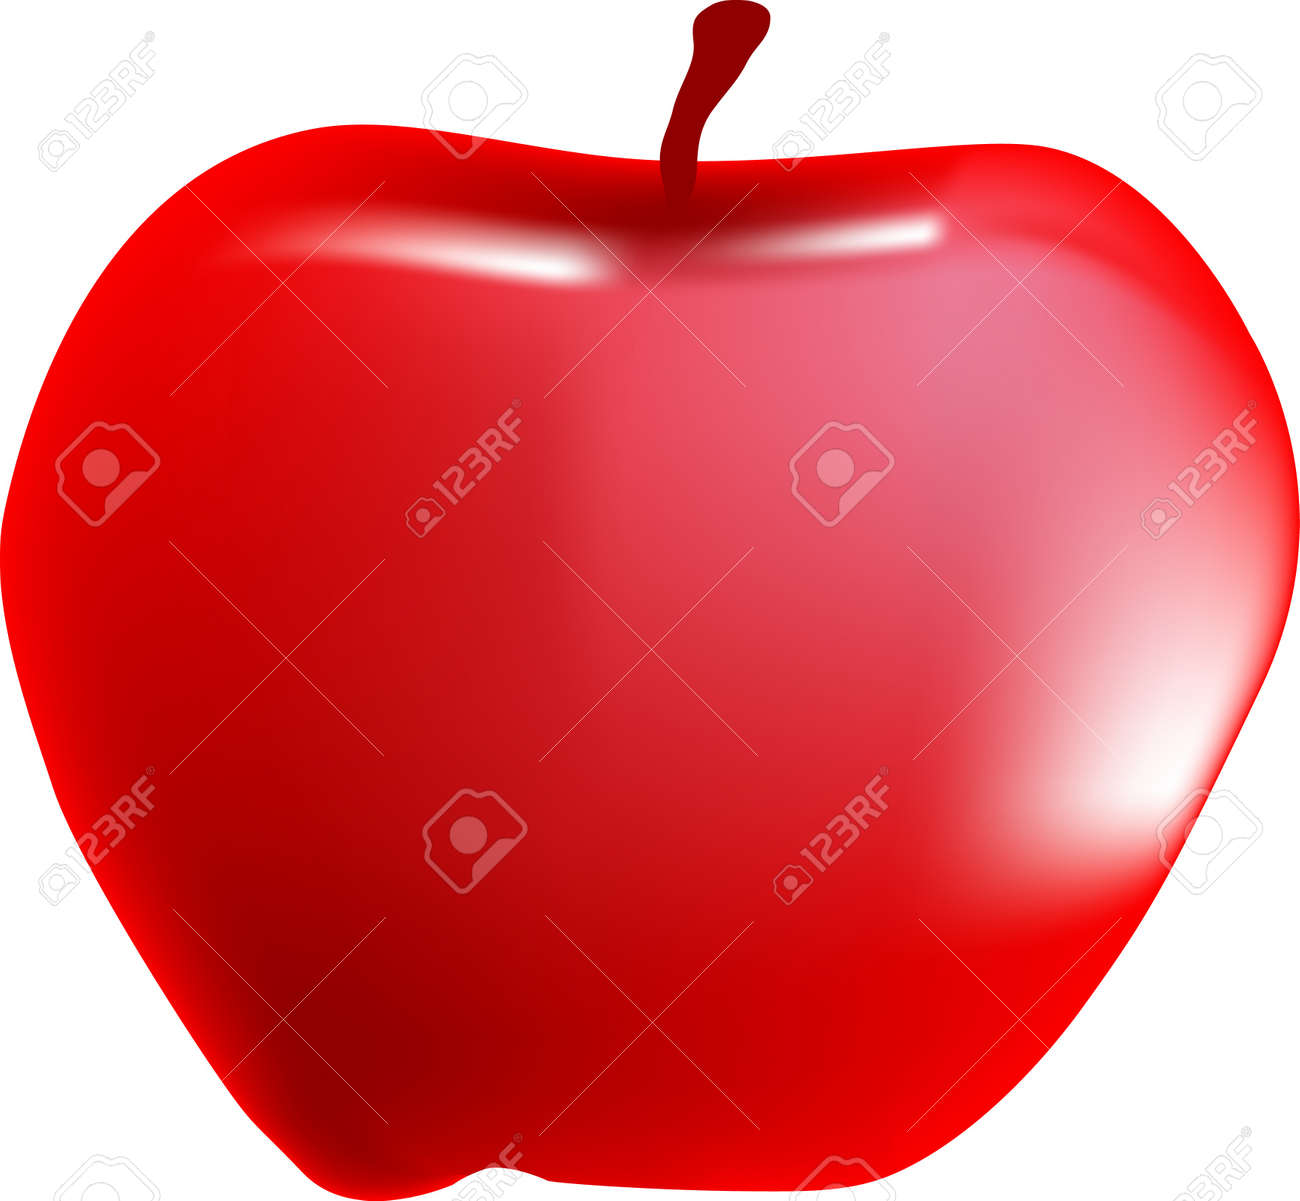 A red apple Stock Vector - 15189937